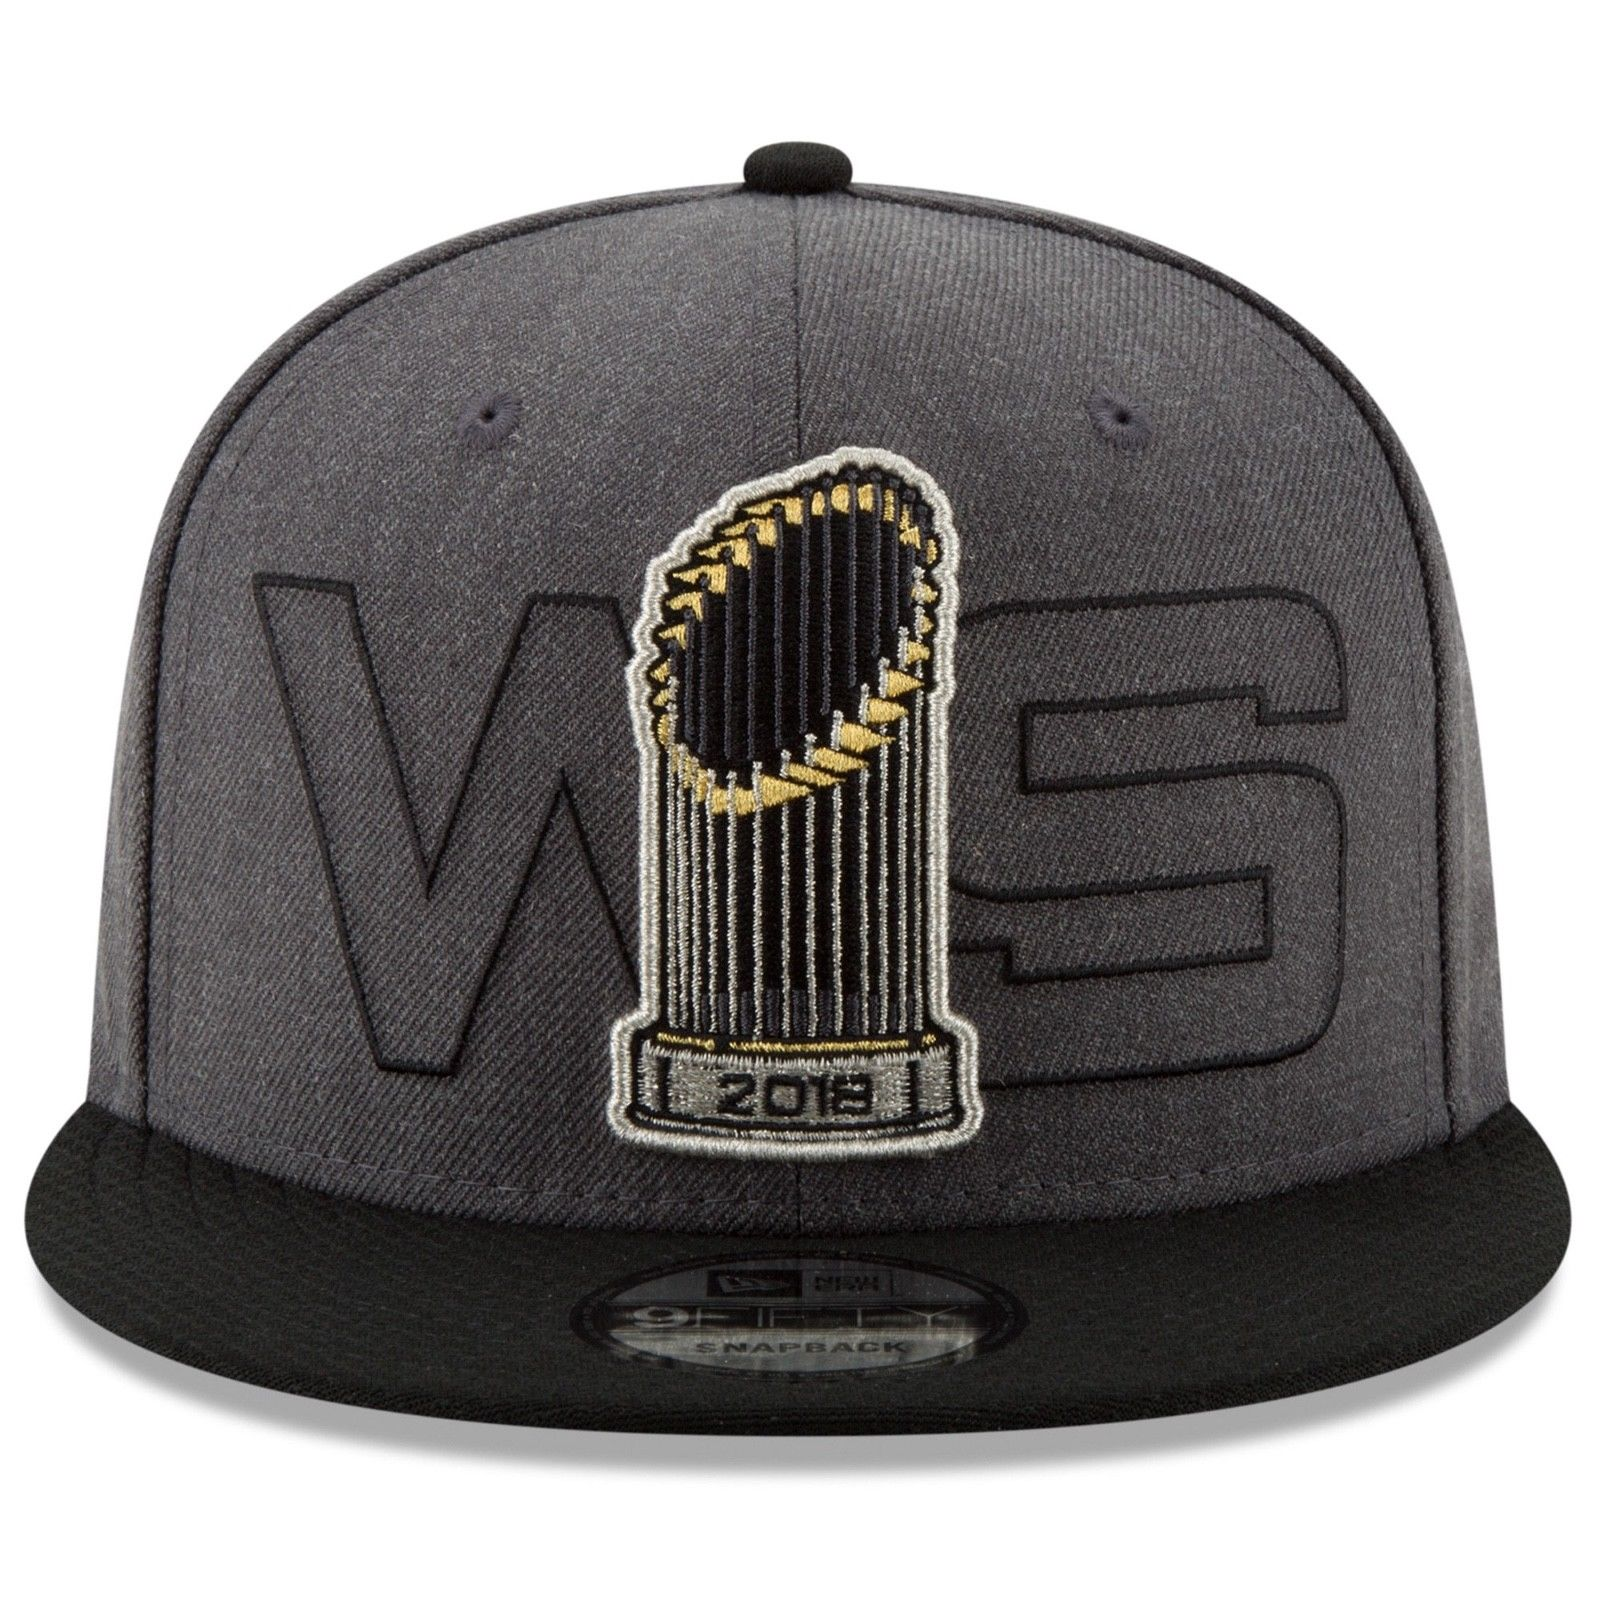 d9218740dc1 BOSTON New Era 9FIFTY 2018 MLB World Series Commissioner s Trophy